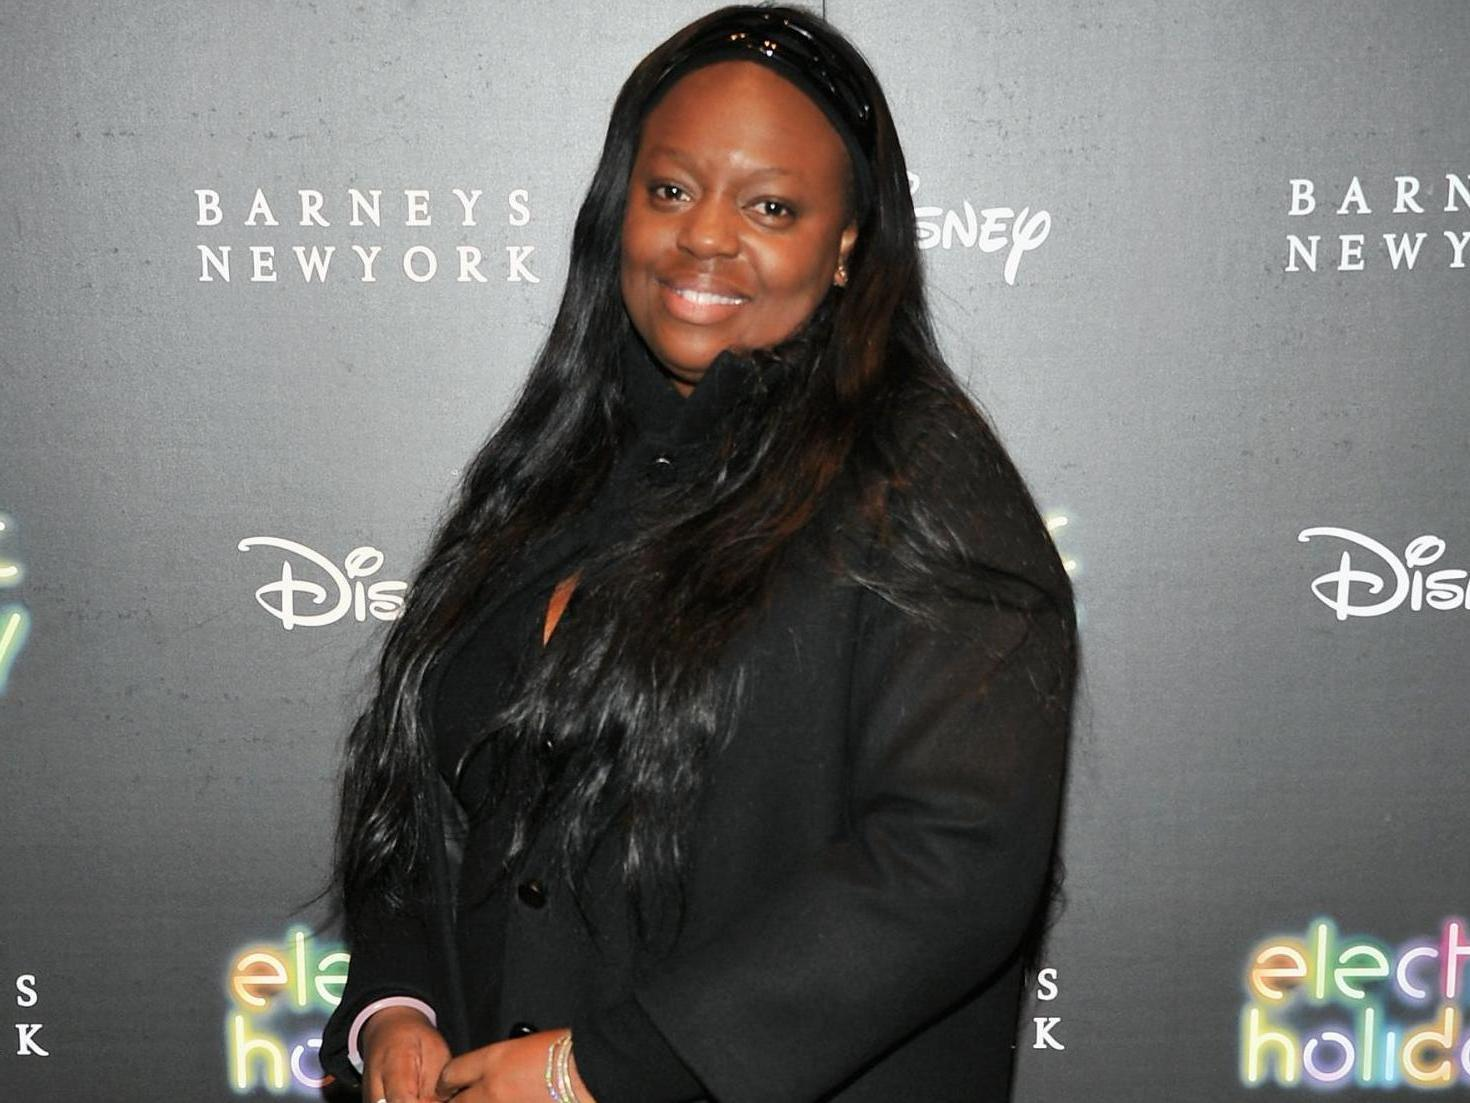 Pat McGrath used cocoa powder as makeup due to lack of products for dark skin tones